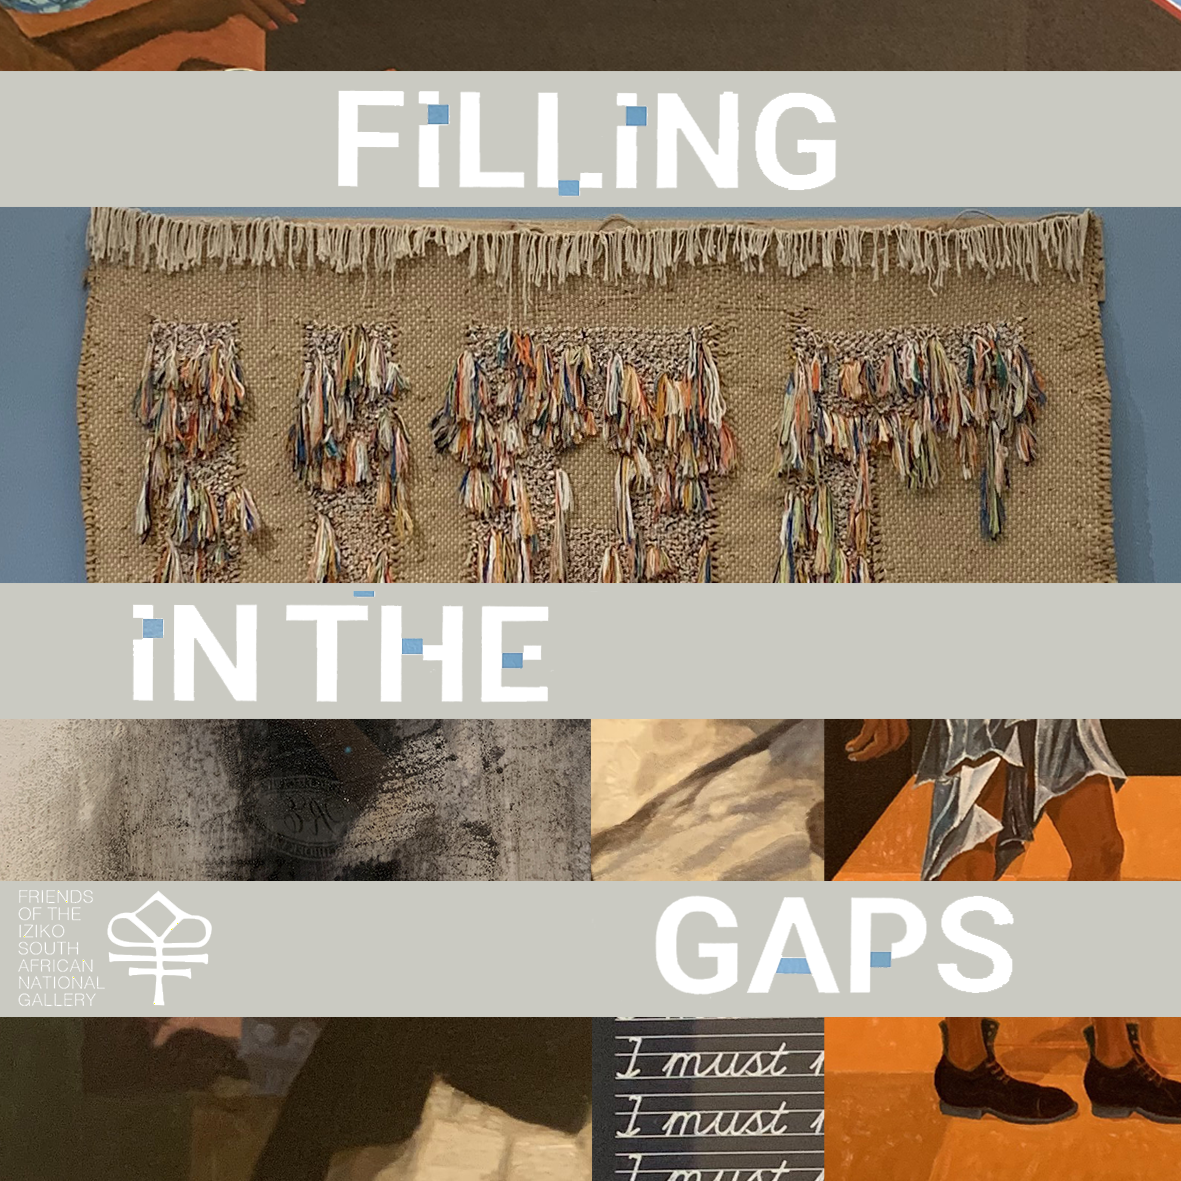 Filling in the Gaps - an exhibition at ISANG